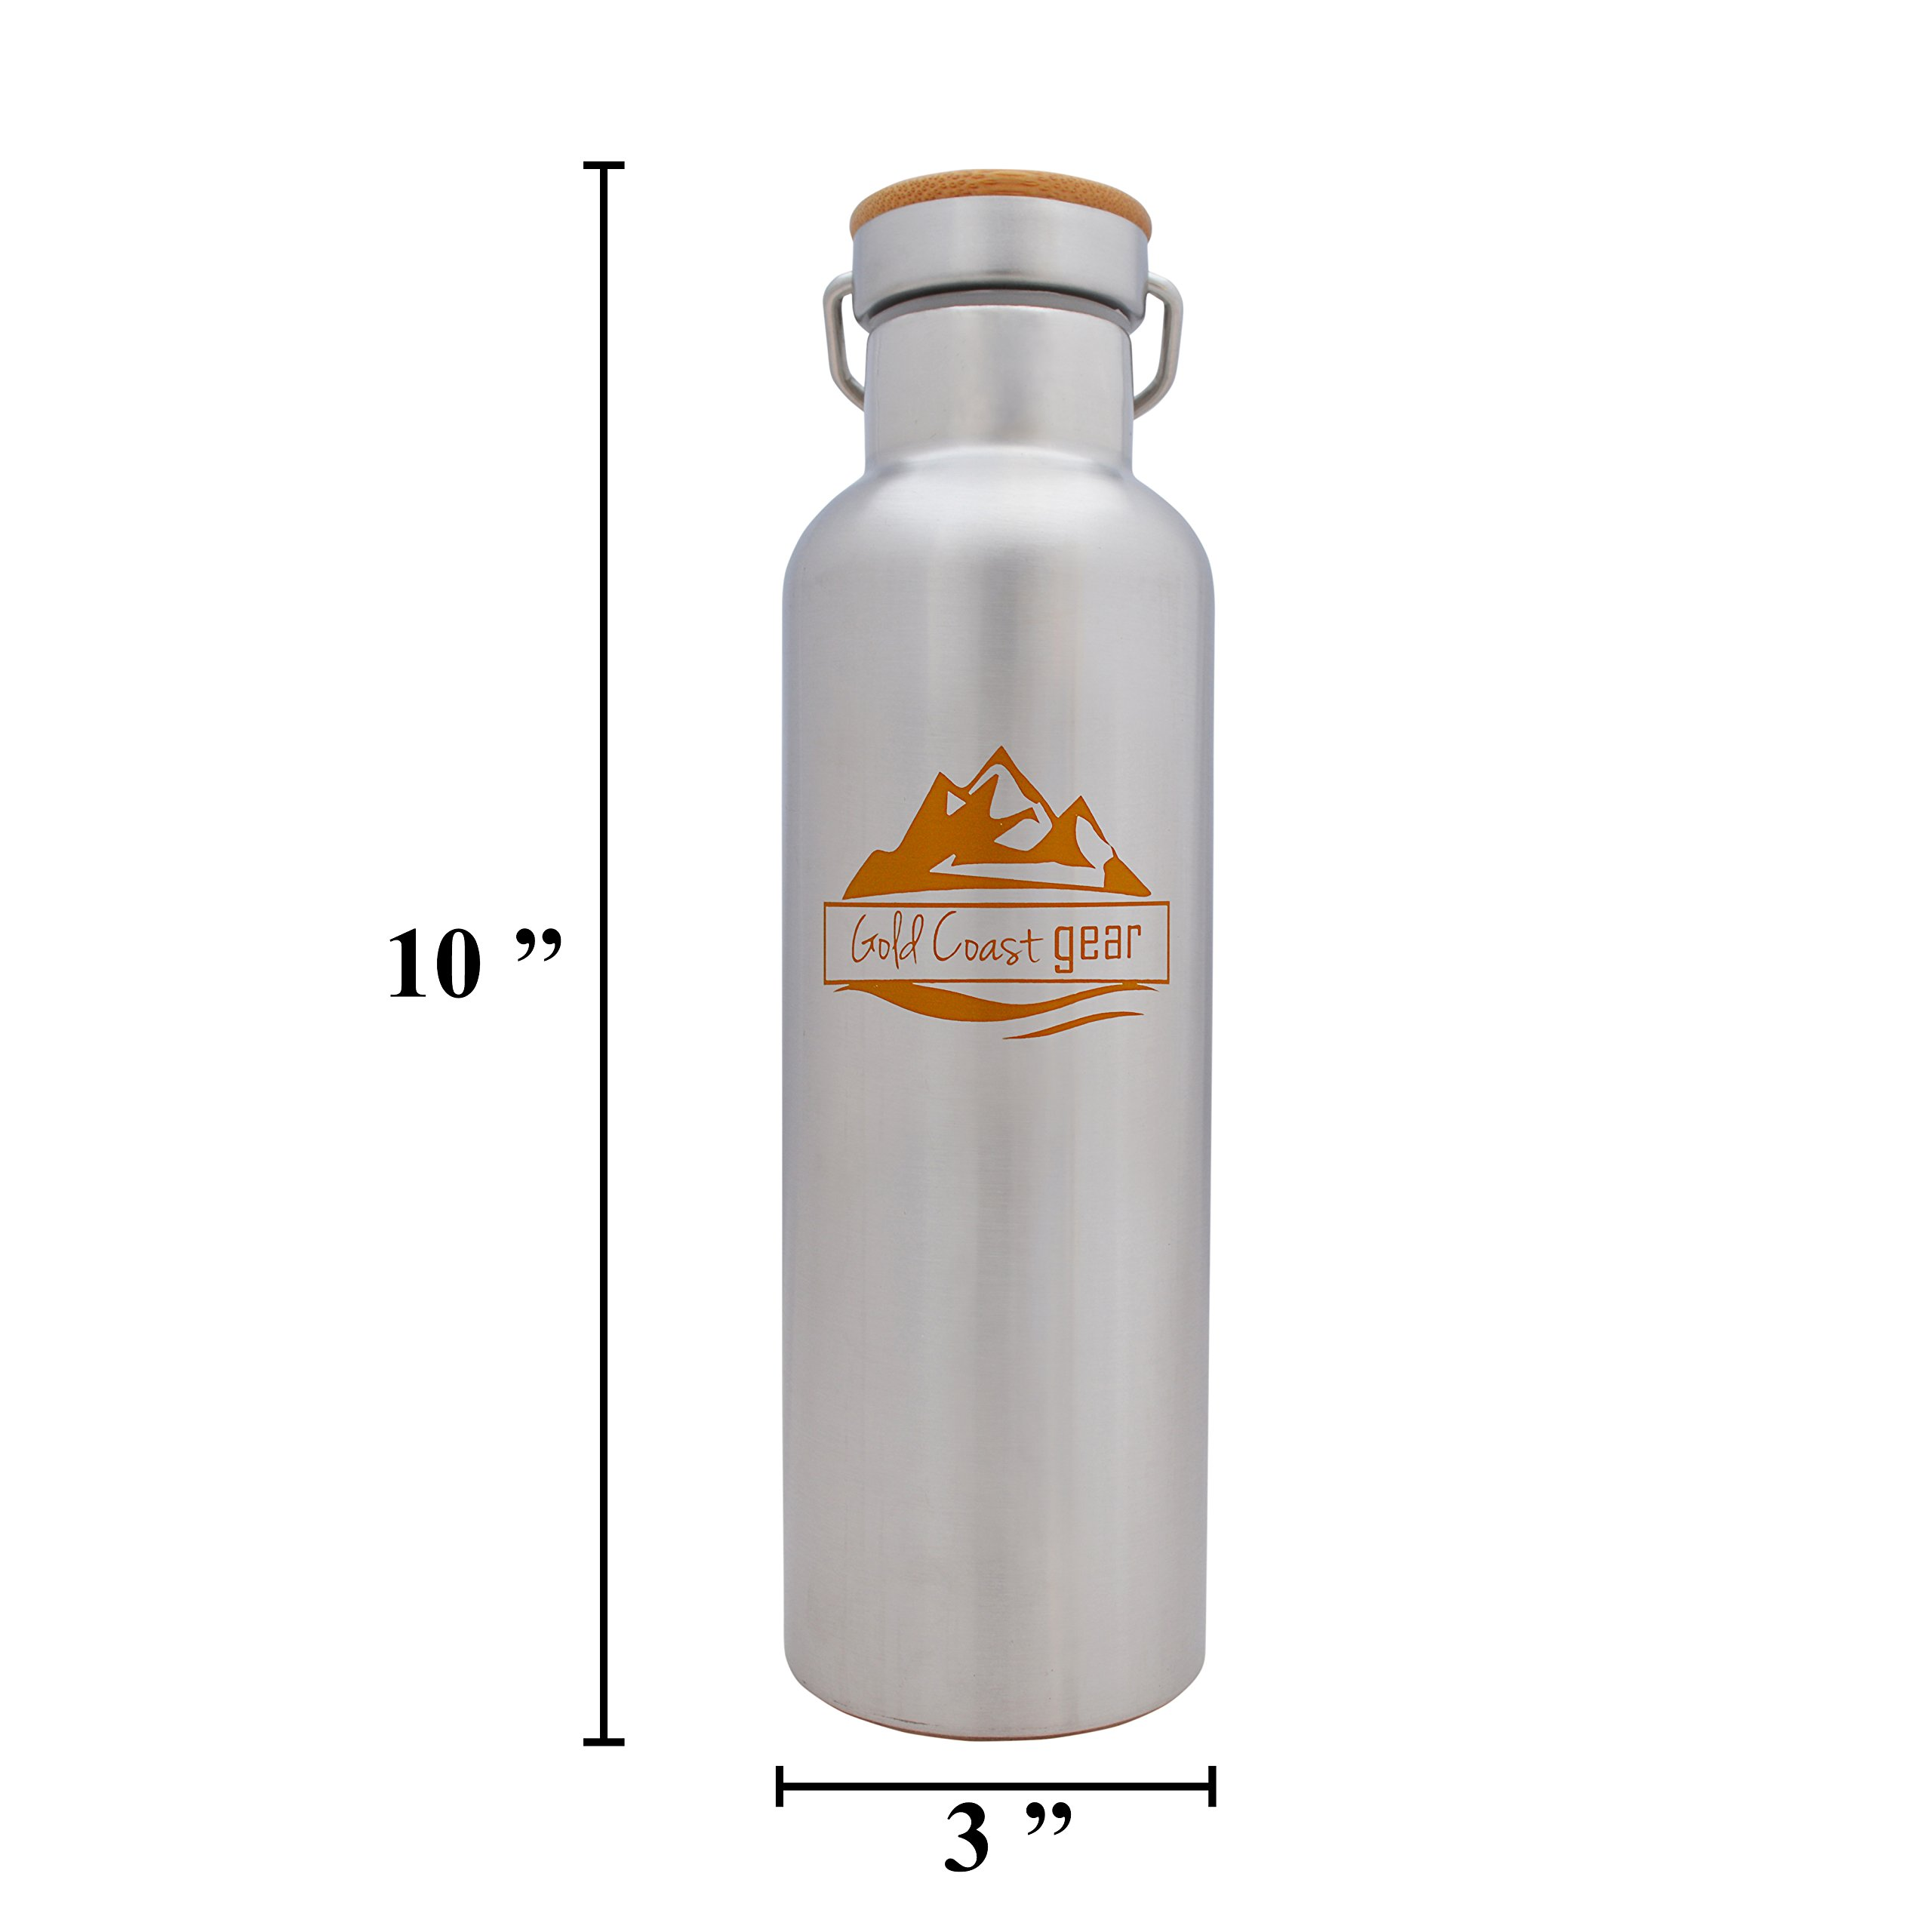 Vacuum Insulated Stainless Steel Water Bottle ( 25 OZ / 750 ML ). Zero Condensation! (750ml) by Gold Coast gear (Image #4)